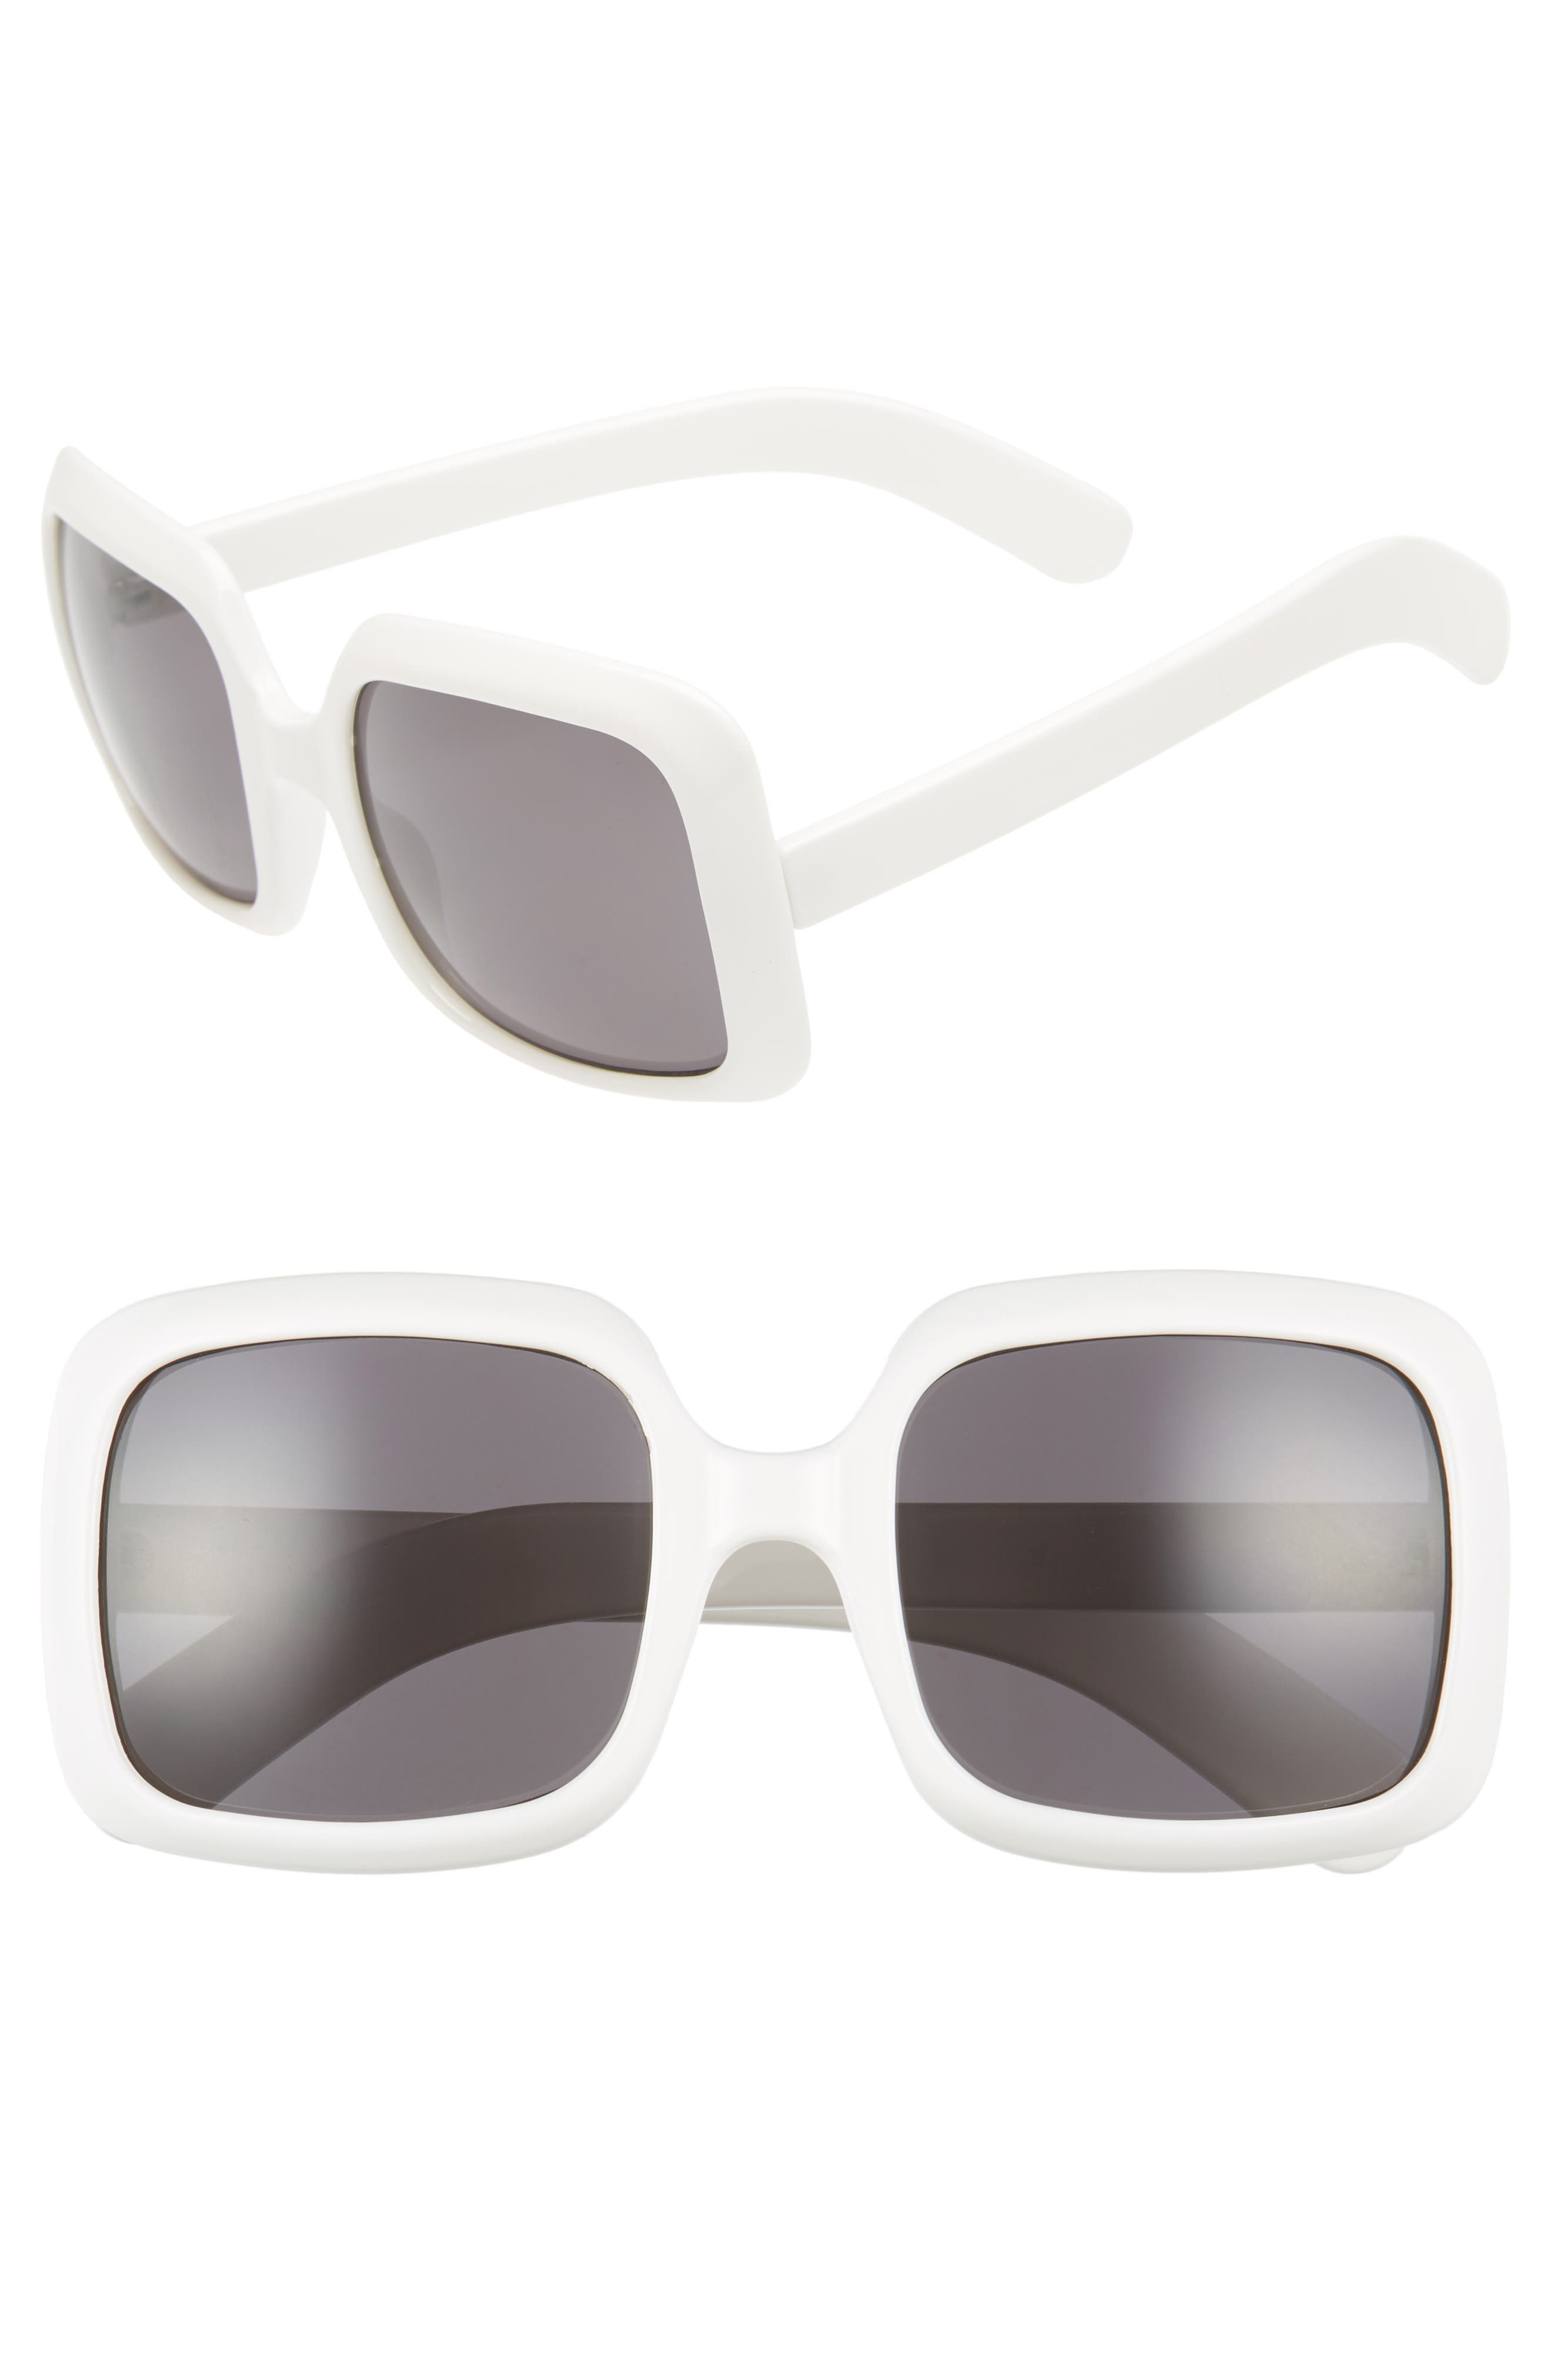 54mm Retro Square Sunglasses,                             Main thumbnail 1, color,                             White/ Black